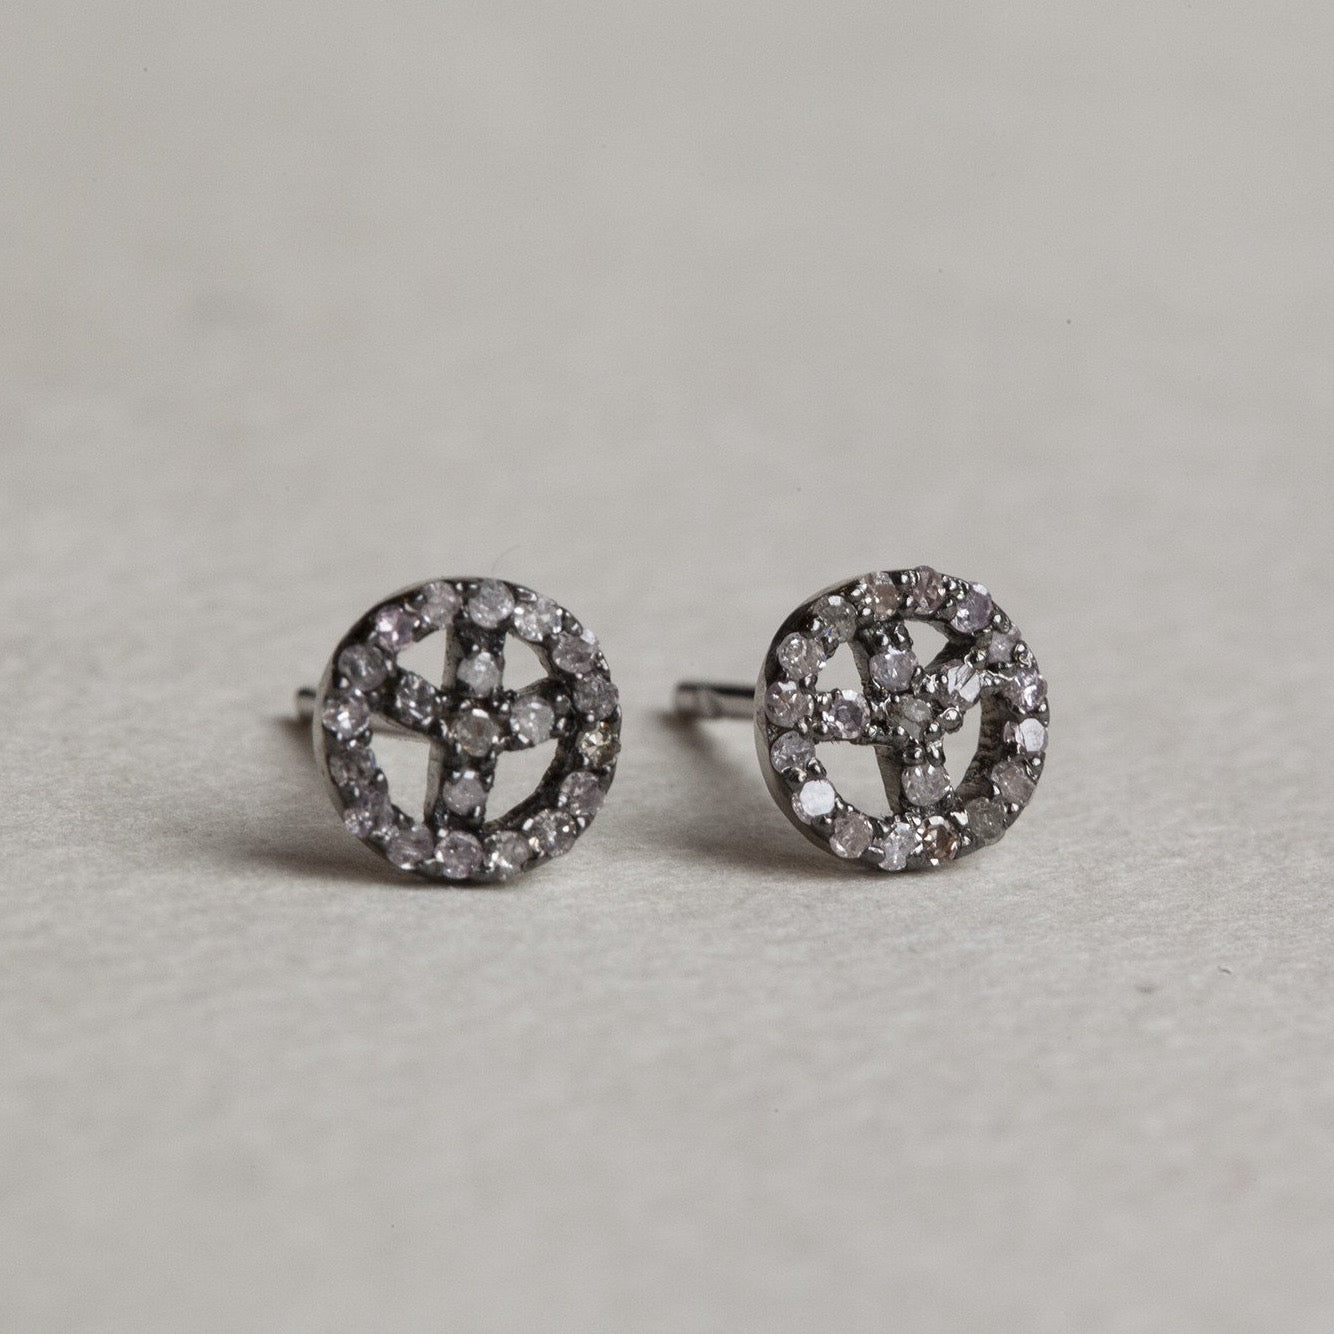 felt Affordable Diamond Range peace stud earrings